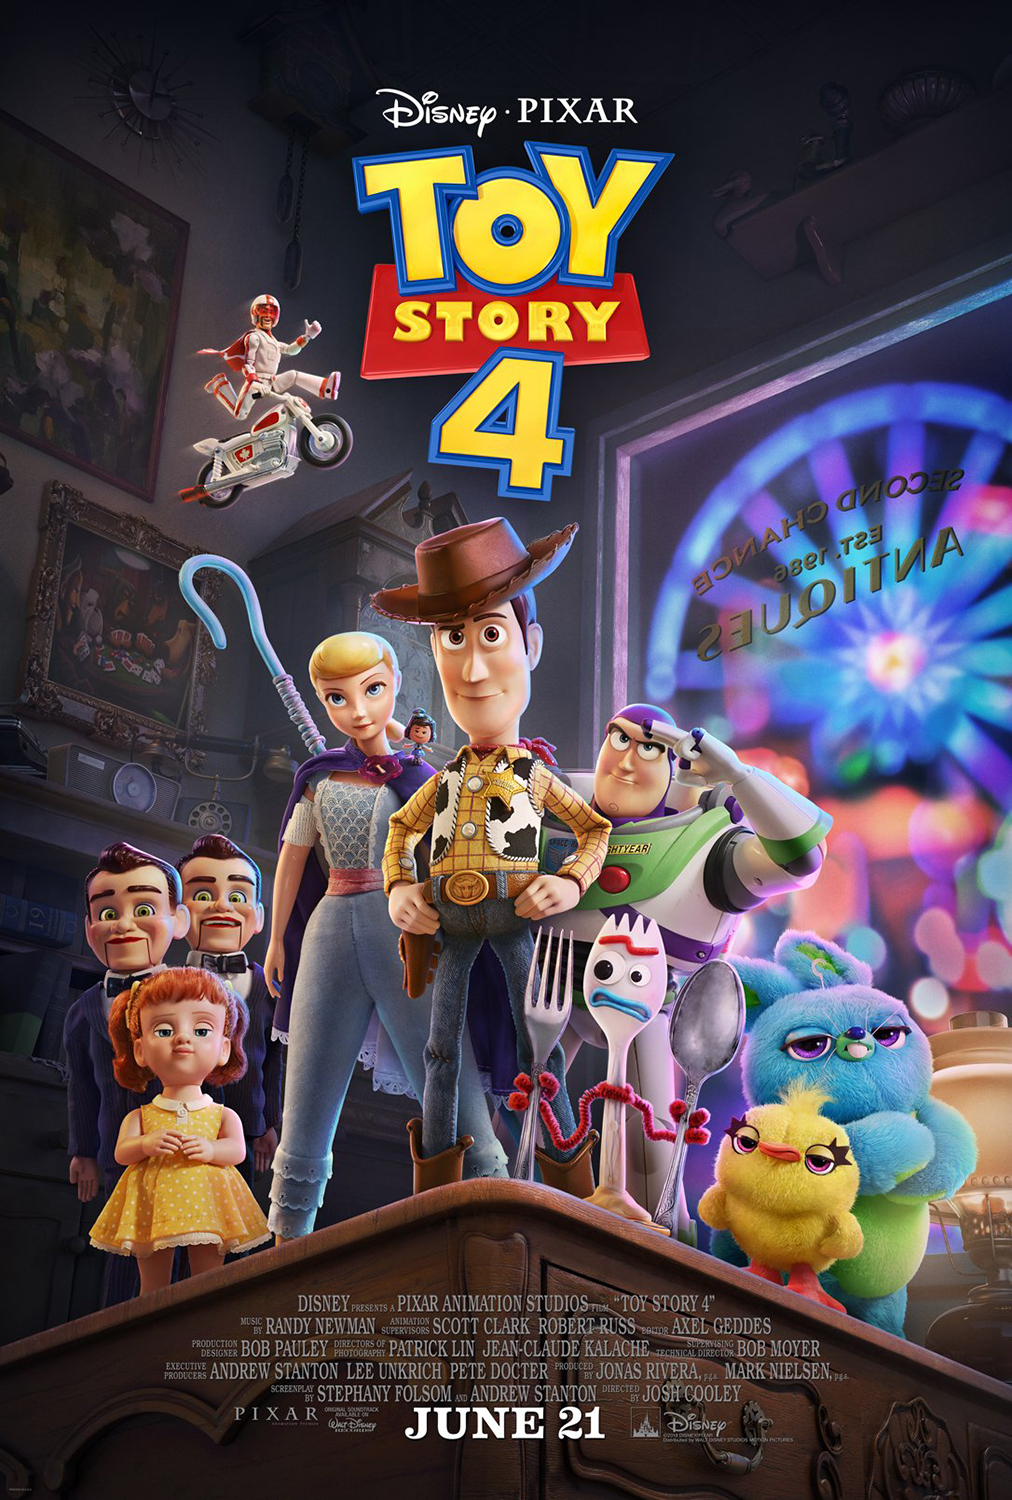 the toy story 4 poster has some easter eggs you might u2019ve